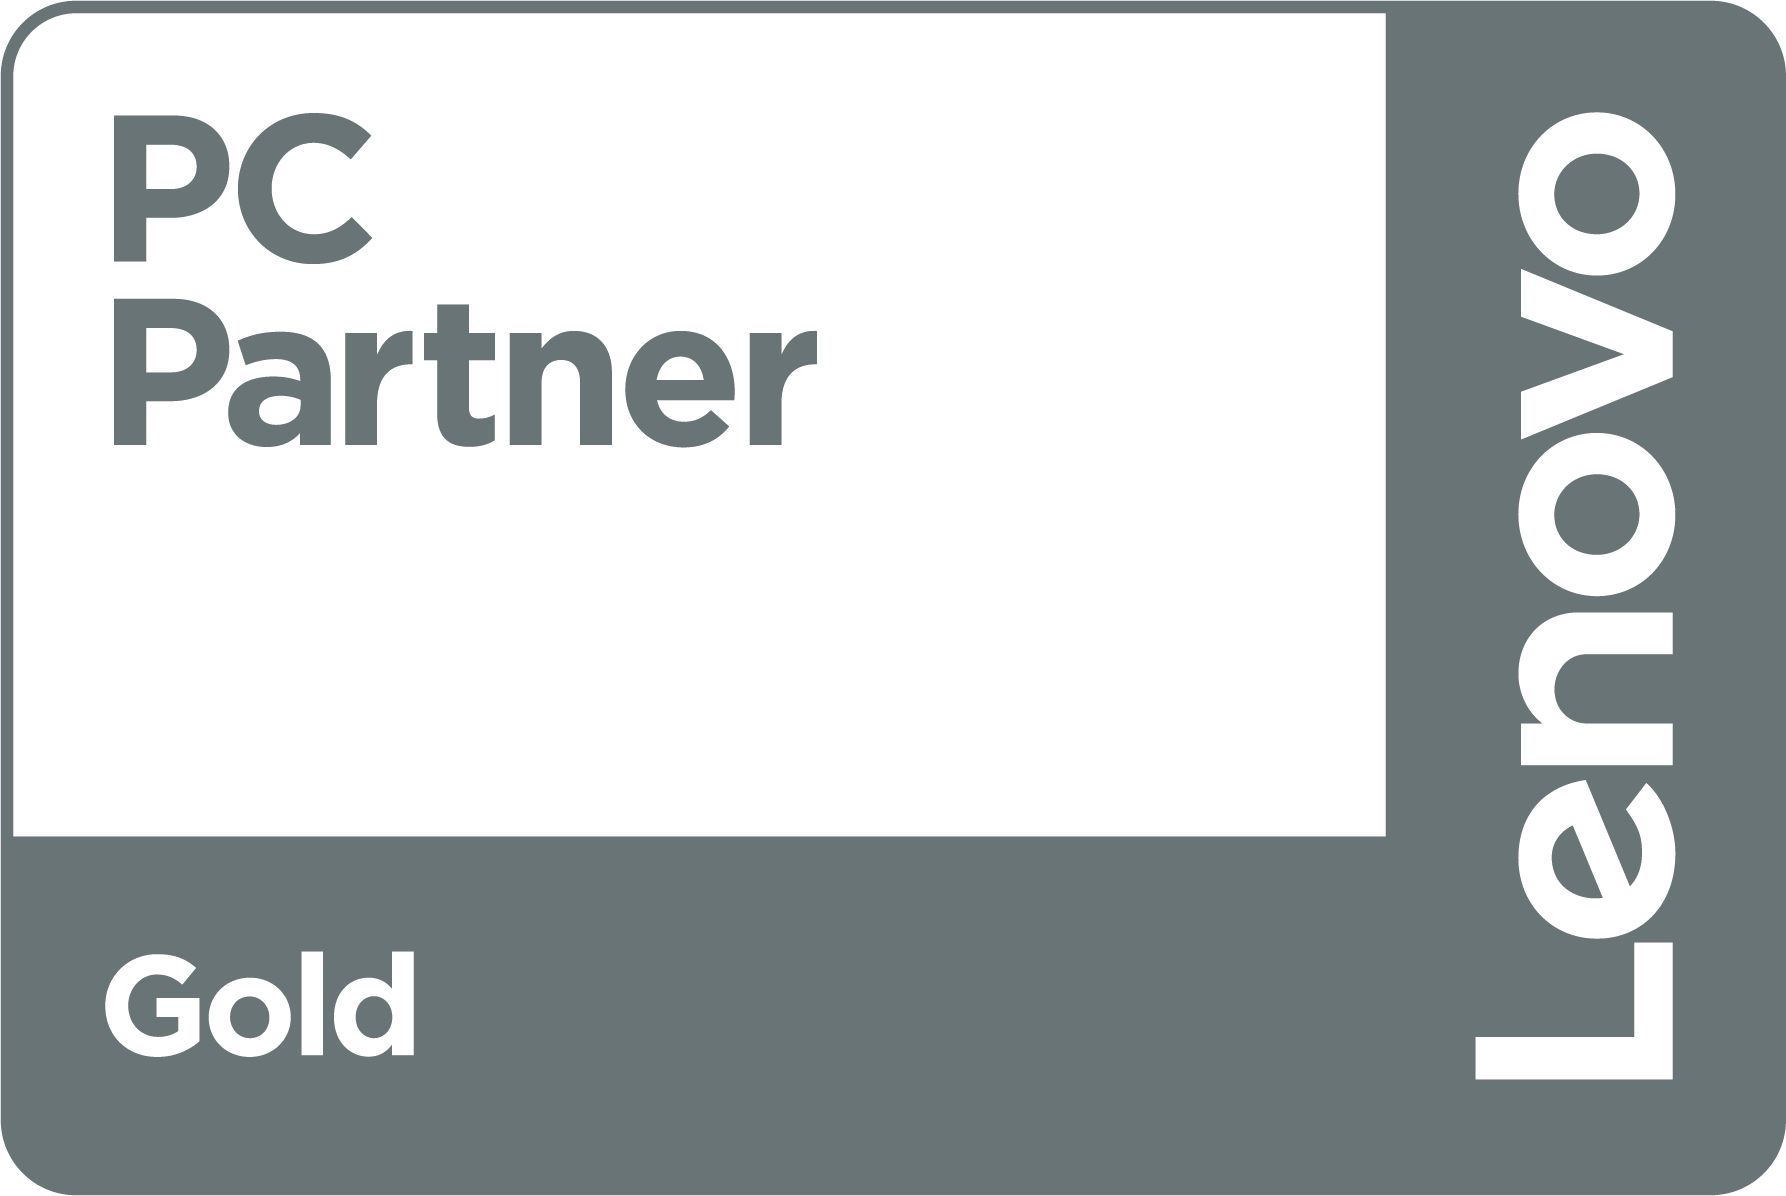 ITEC is accredited as a Lenovo Gold PC Partner